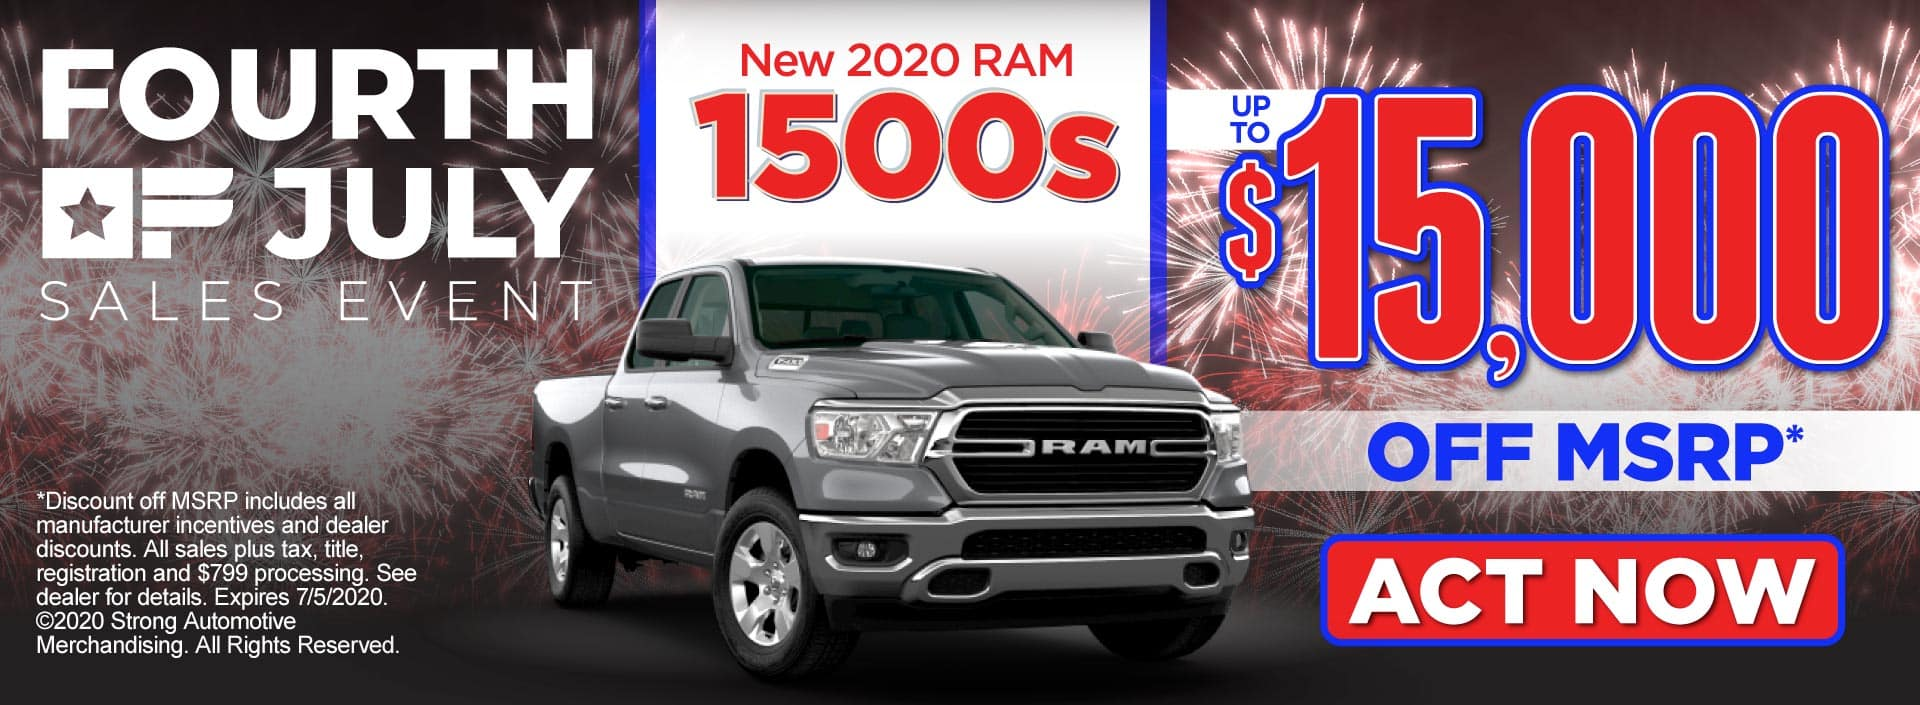 New 2020 Ram 1500s - up to $15,000 off MSRP* - Click to View Inventory